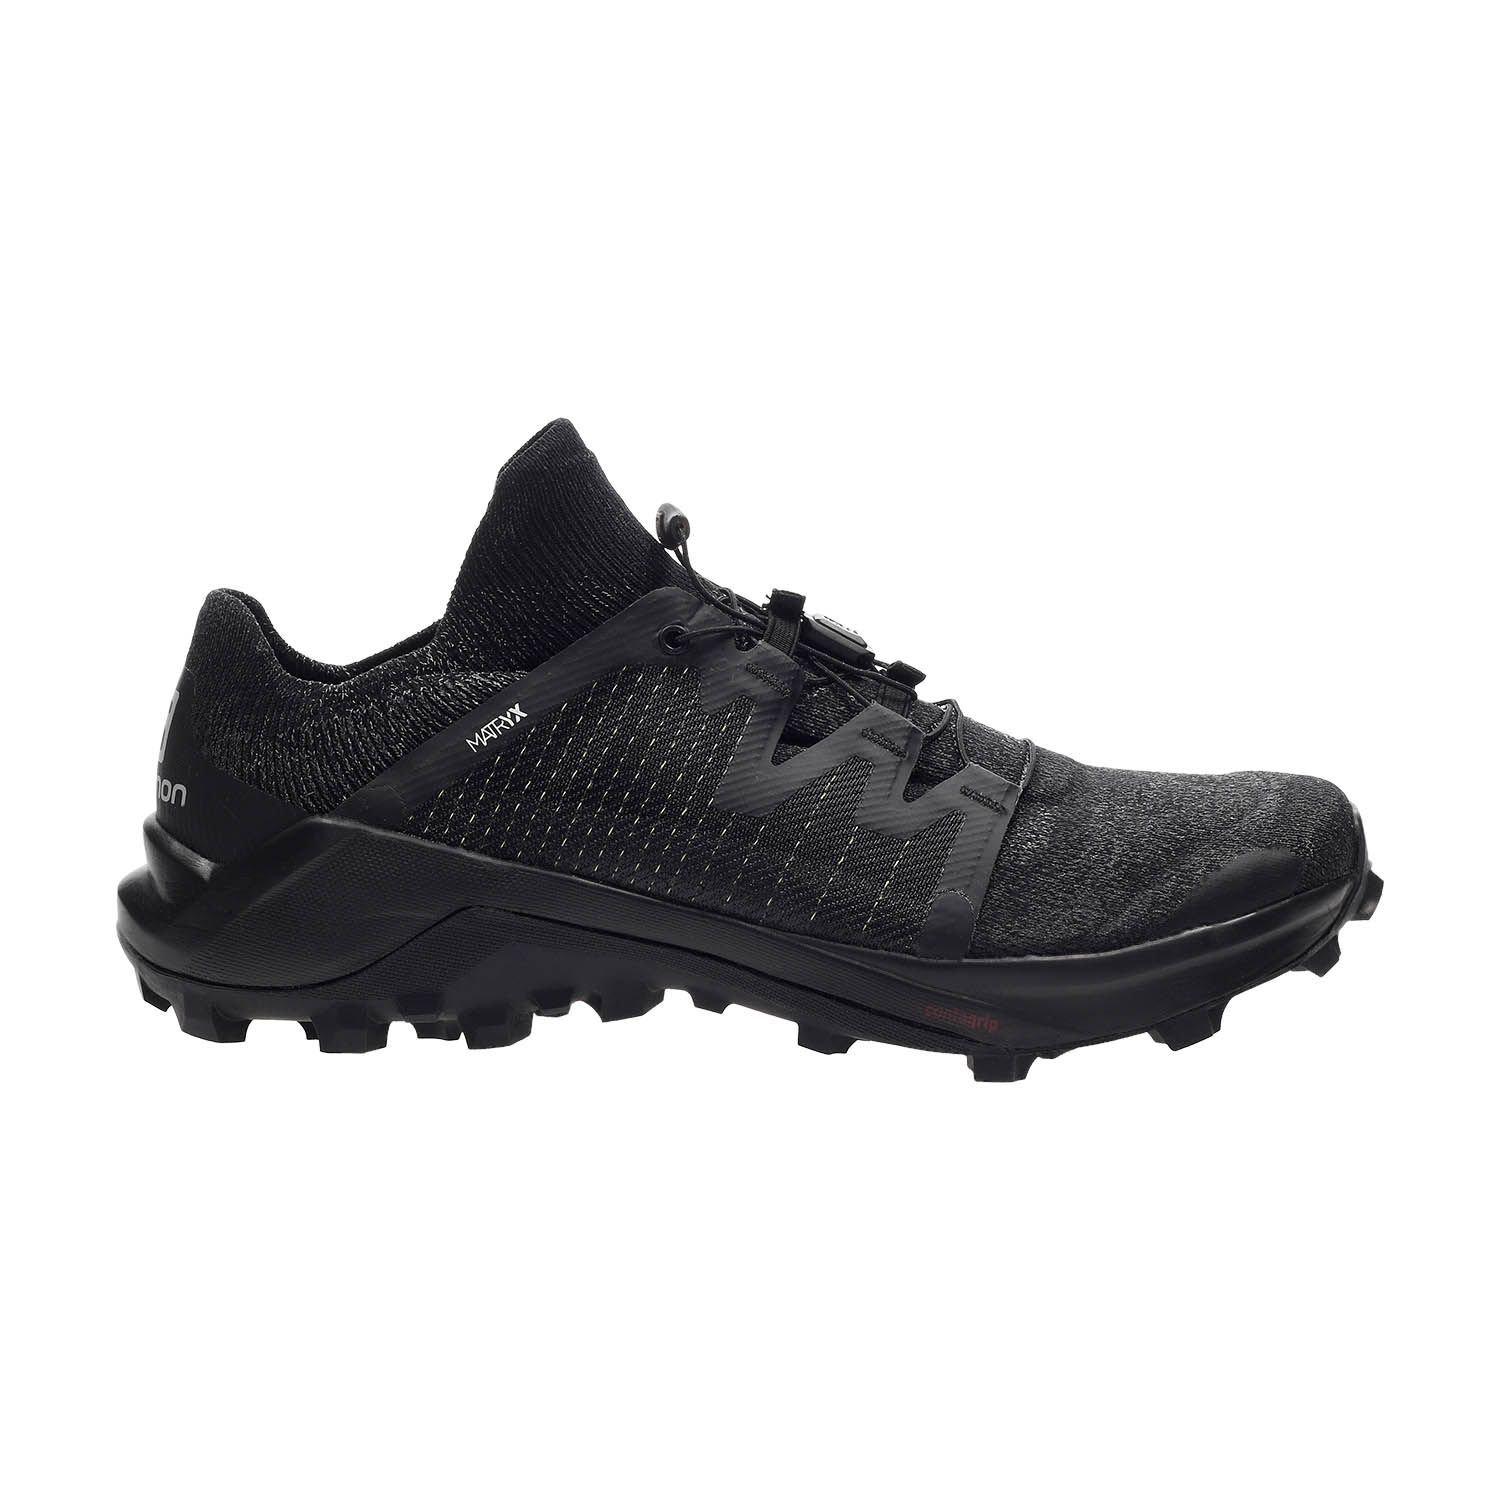 Salomon Cross Pro - Black